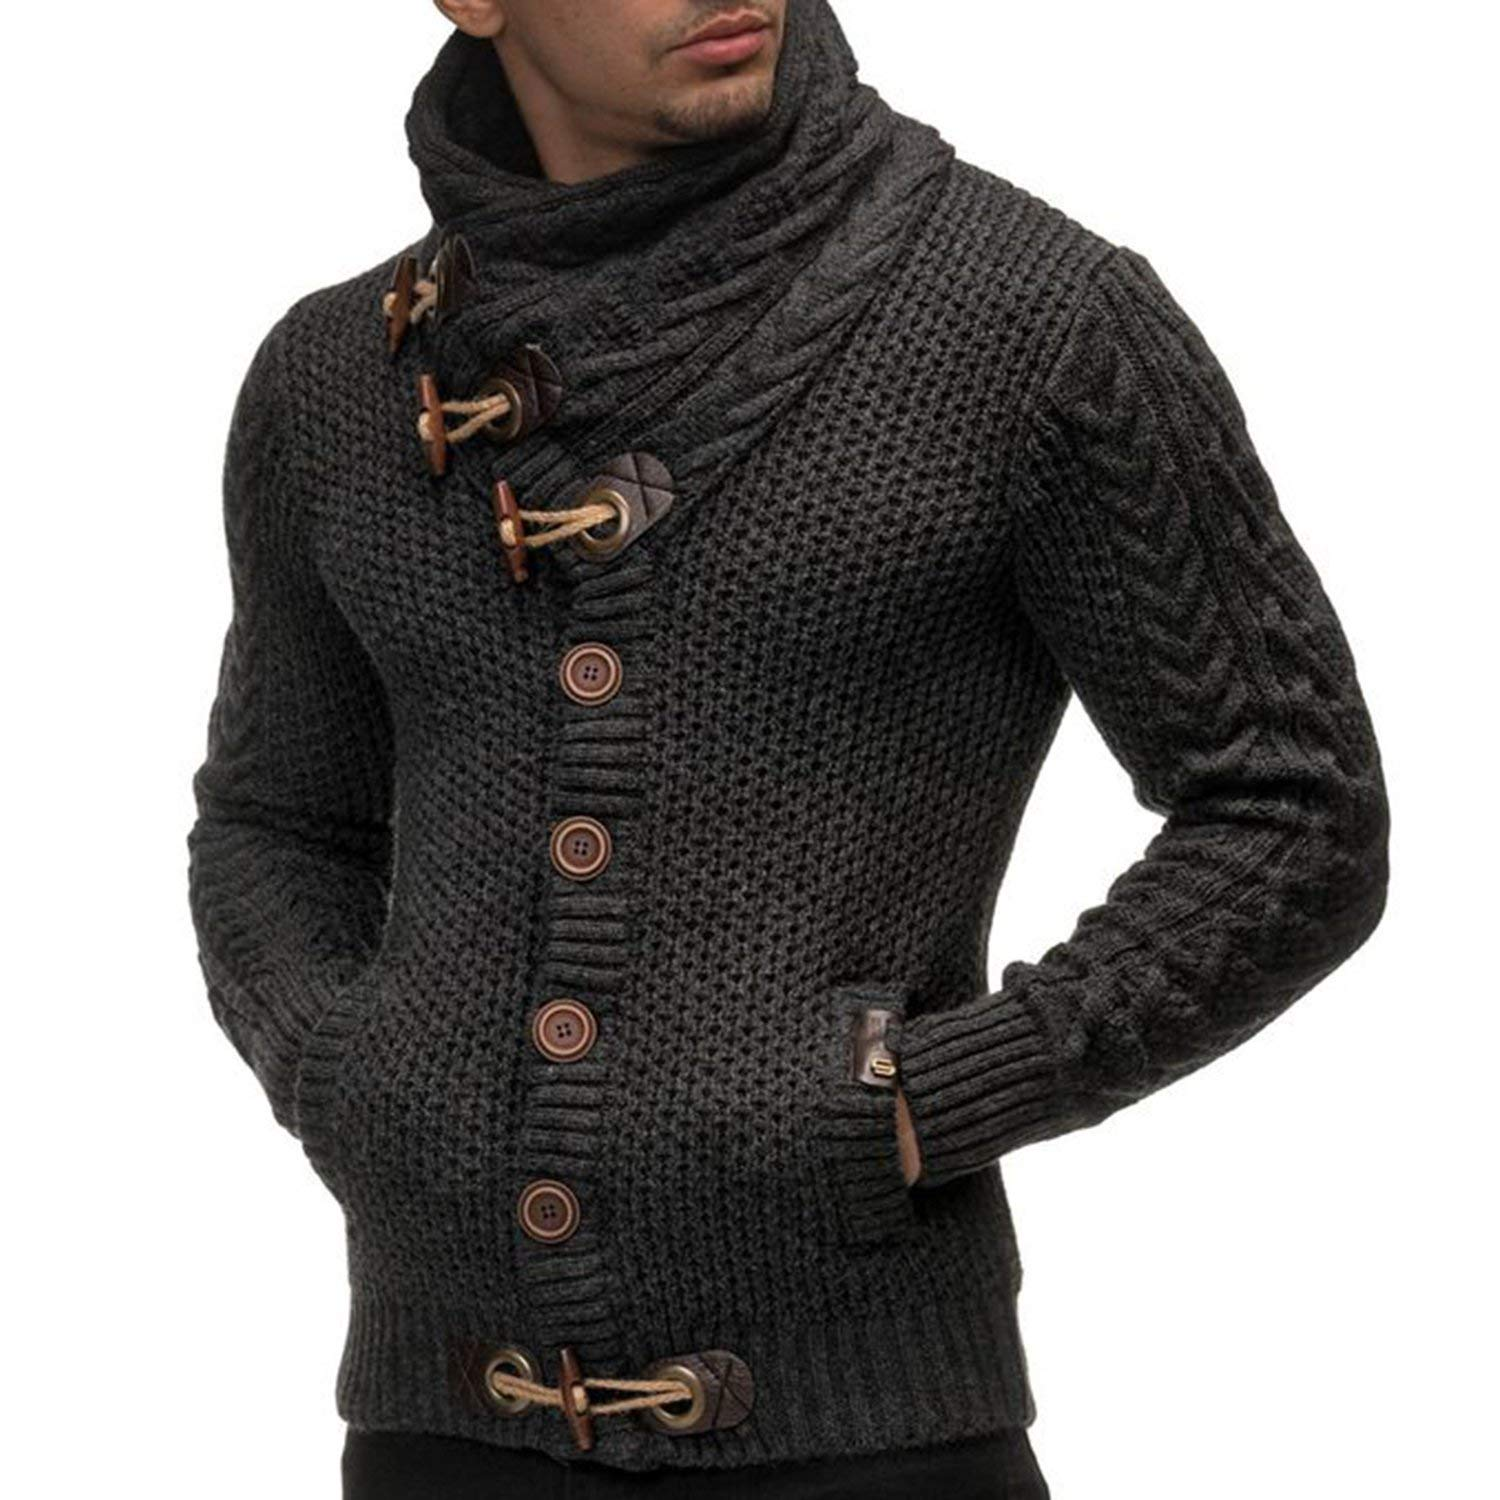 Cromoncent Mens Autumn Winter Casual Turtleneck Cable Knit Pullover Jumper Sweater